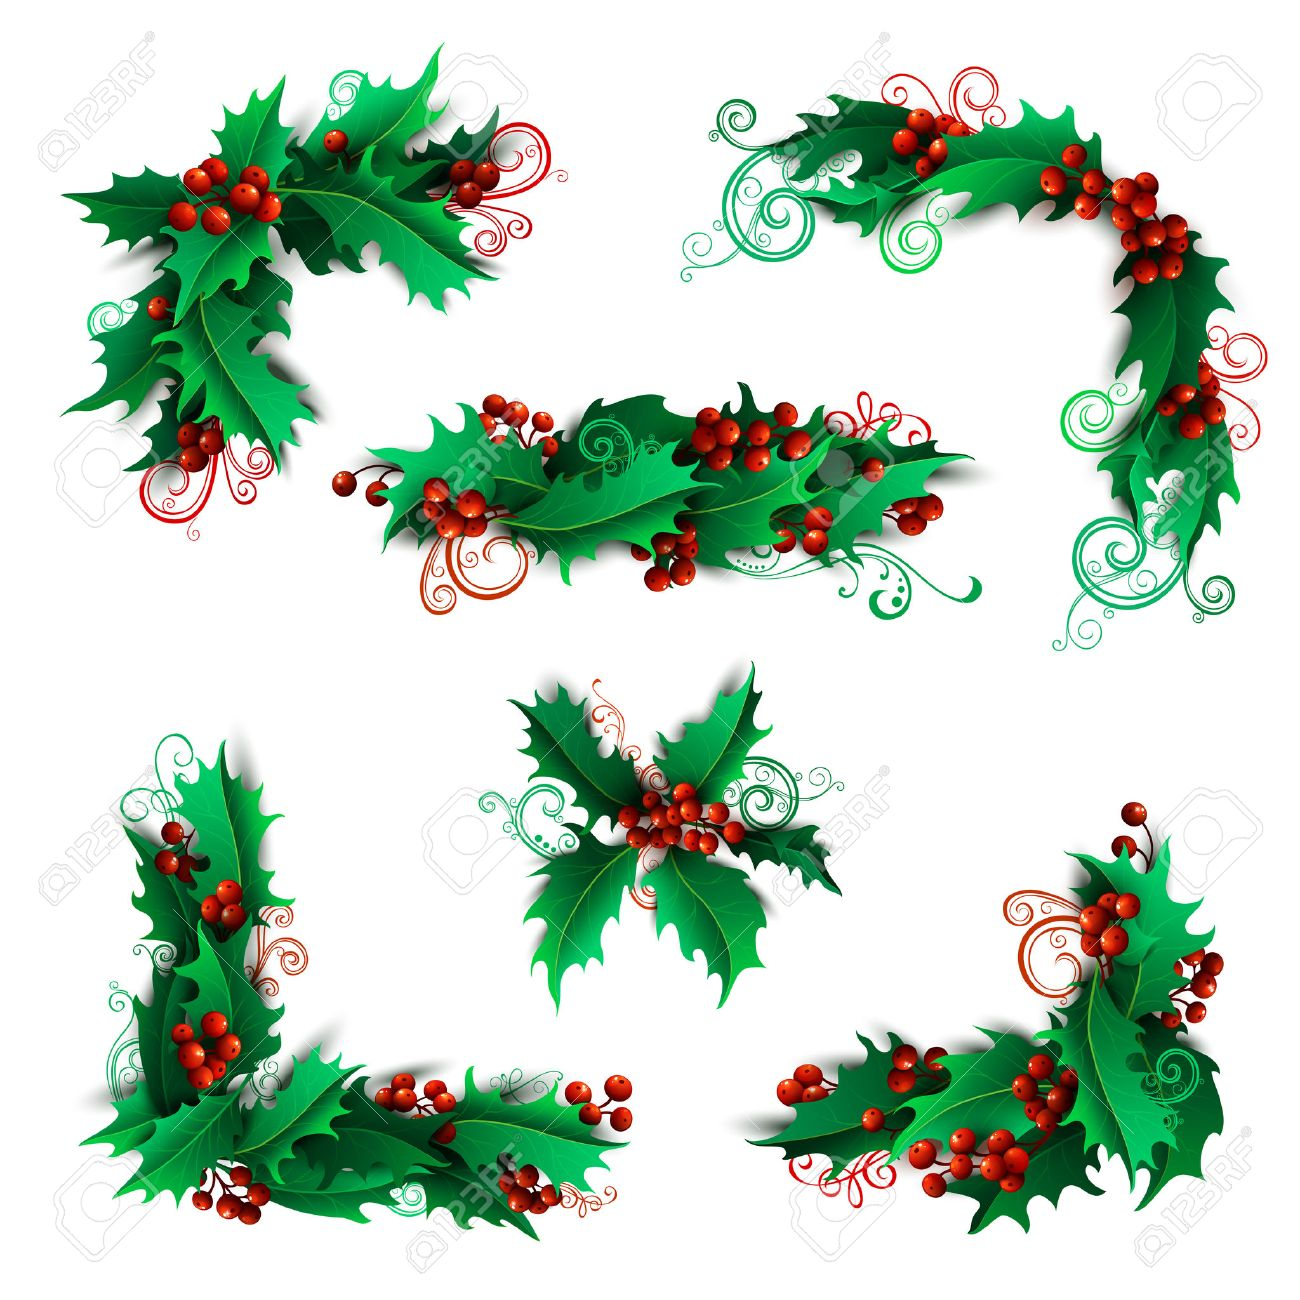 set of holly berries page decorations and dividers christmas vintage design elements isolated on white